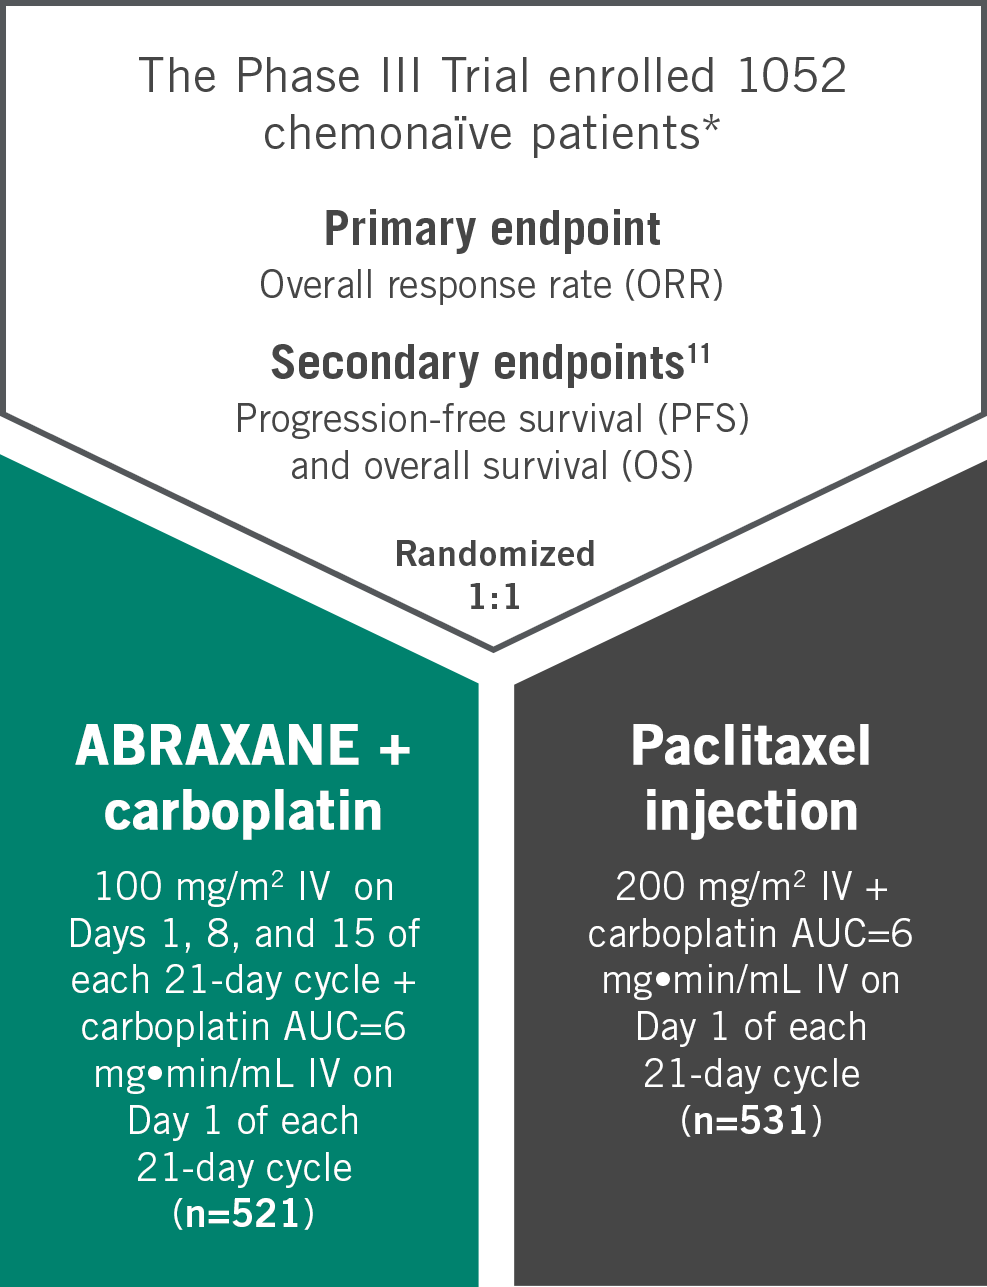 ABRAXANE® + carboplatin vs paclitaxel + carboplatin with weekly dosing over 21 day cycle | Primary endpoint: Overall response rate | phase III trial design for advanced non-small cell lung cancer (NSCLC) - chart